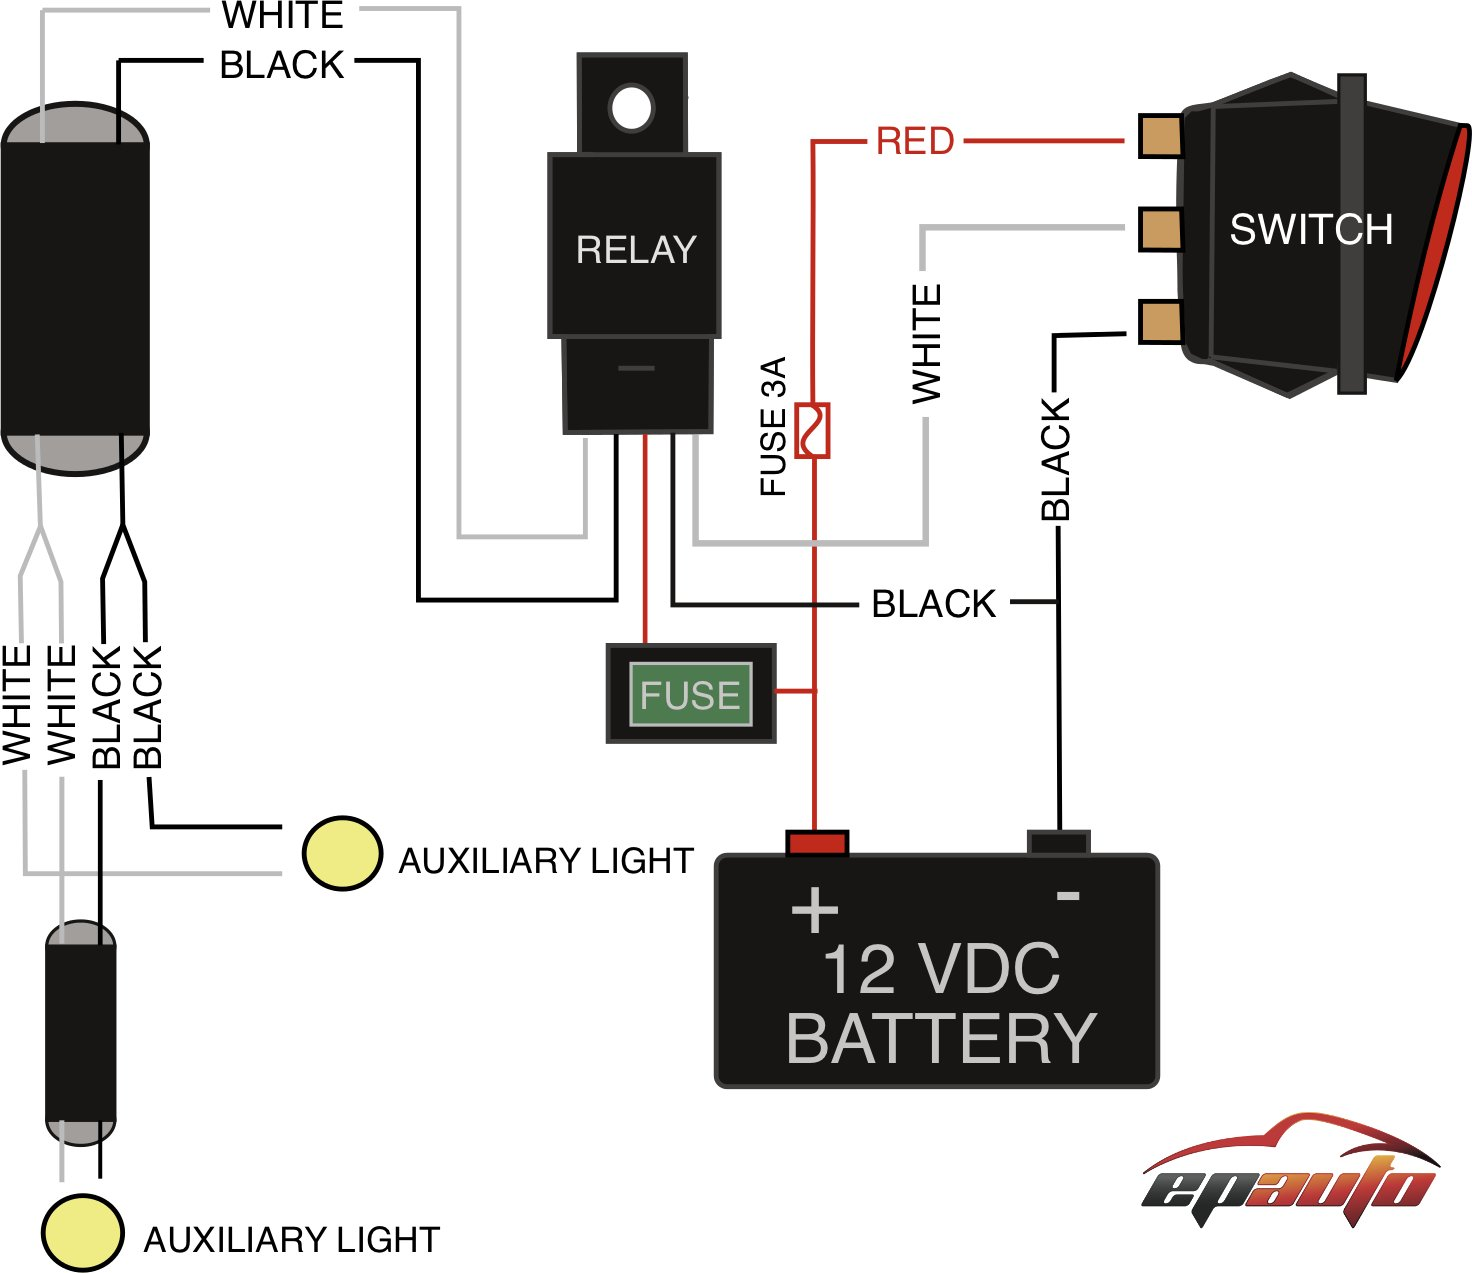 Bar Light Switch Wiring Diagram - Wiring Diagram User on led strip lights 12v, led trailer wiring harness, led light wiring diagram, power supply wiring harness, led light strip rgb remote, led driver wiring, led light power box wiring, off-road wiring harness, atv led light harness, led off-road led light bars, led trailer flood lights, led light wireless speaker, rigid industries wiring harness, led light switch for atv, led lighting wiring harness, led light bars for utv, led light bars for cars, lightbar wiring harness, led truck light bars off-road, led on off toggle switch wiring,